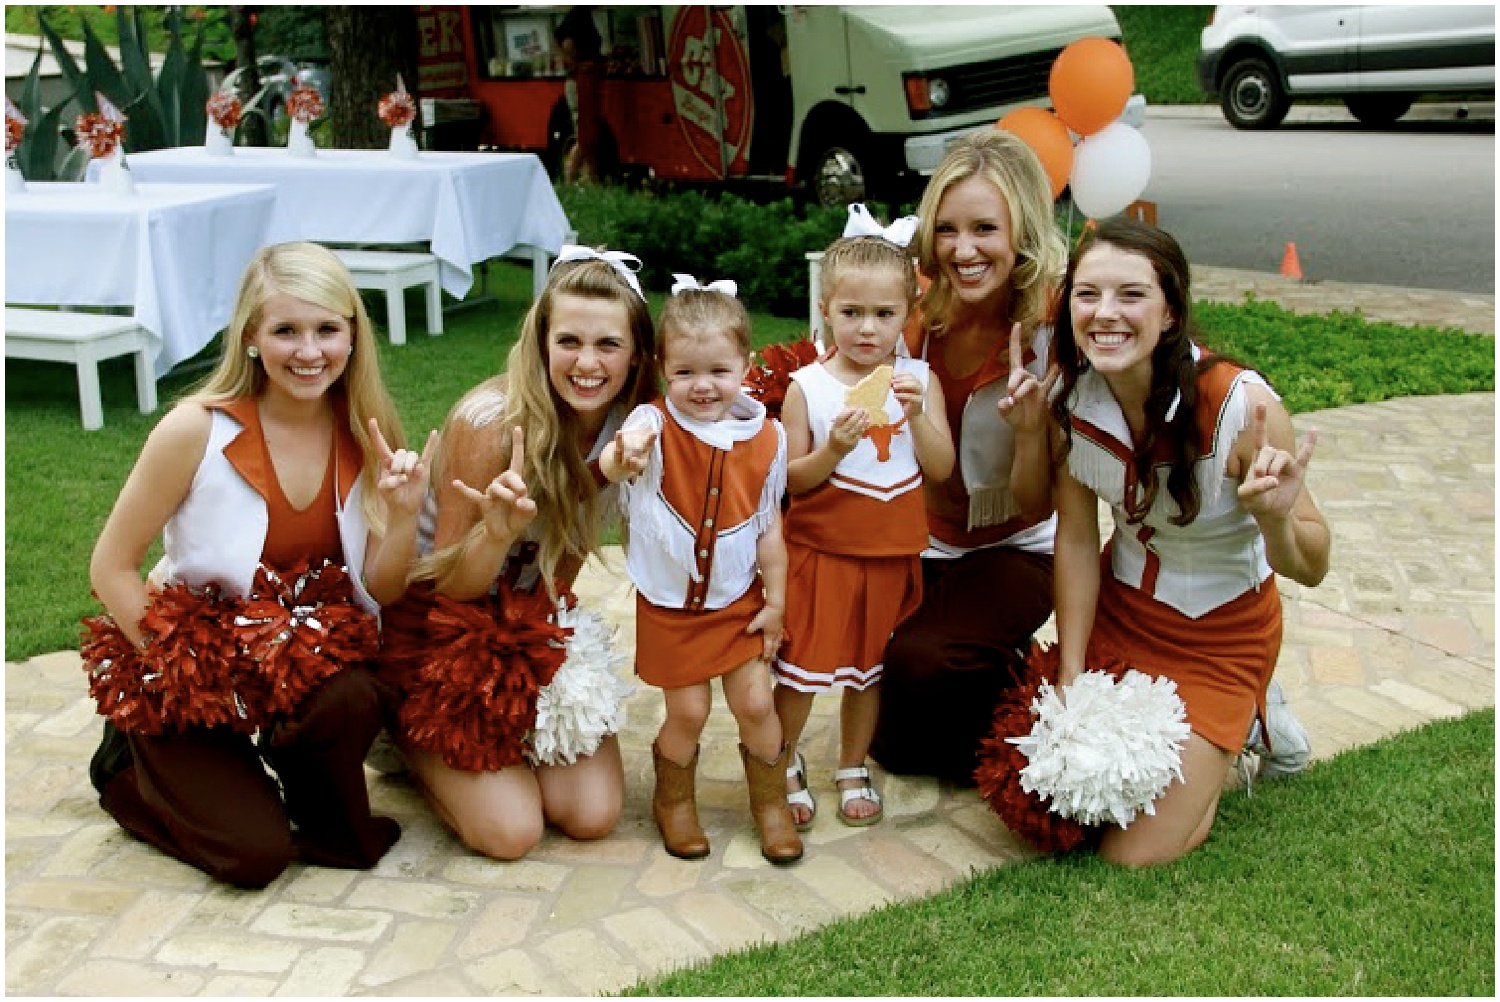 Tailgate_themedchildrensparty_AustinTX_0125.jpg